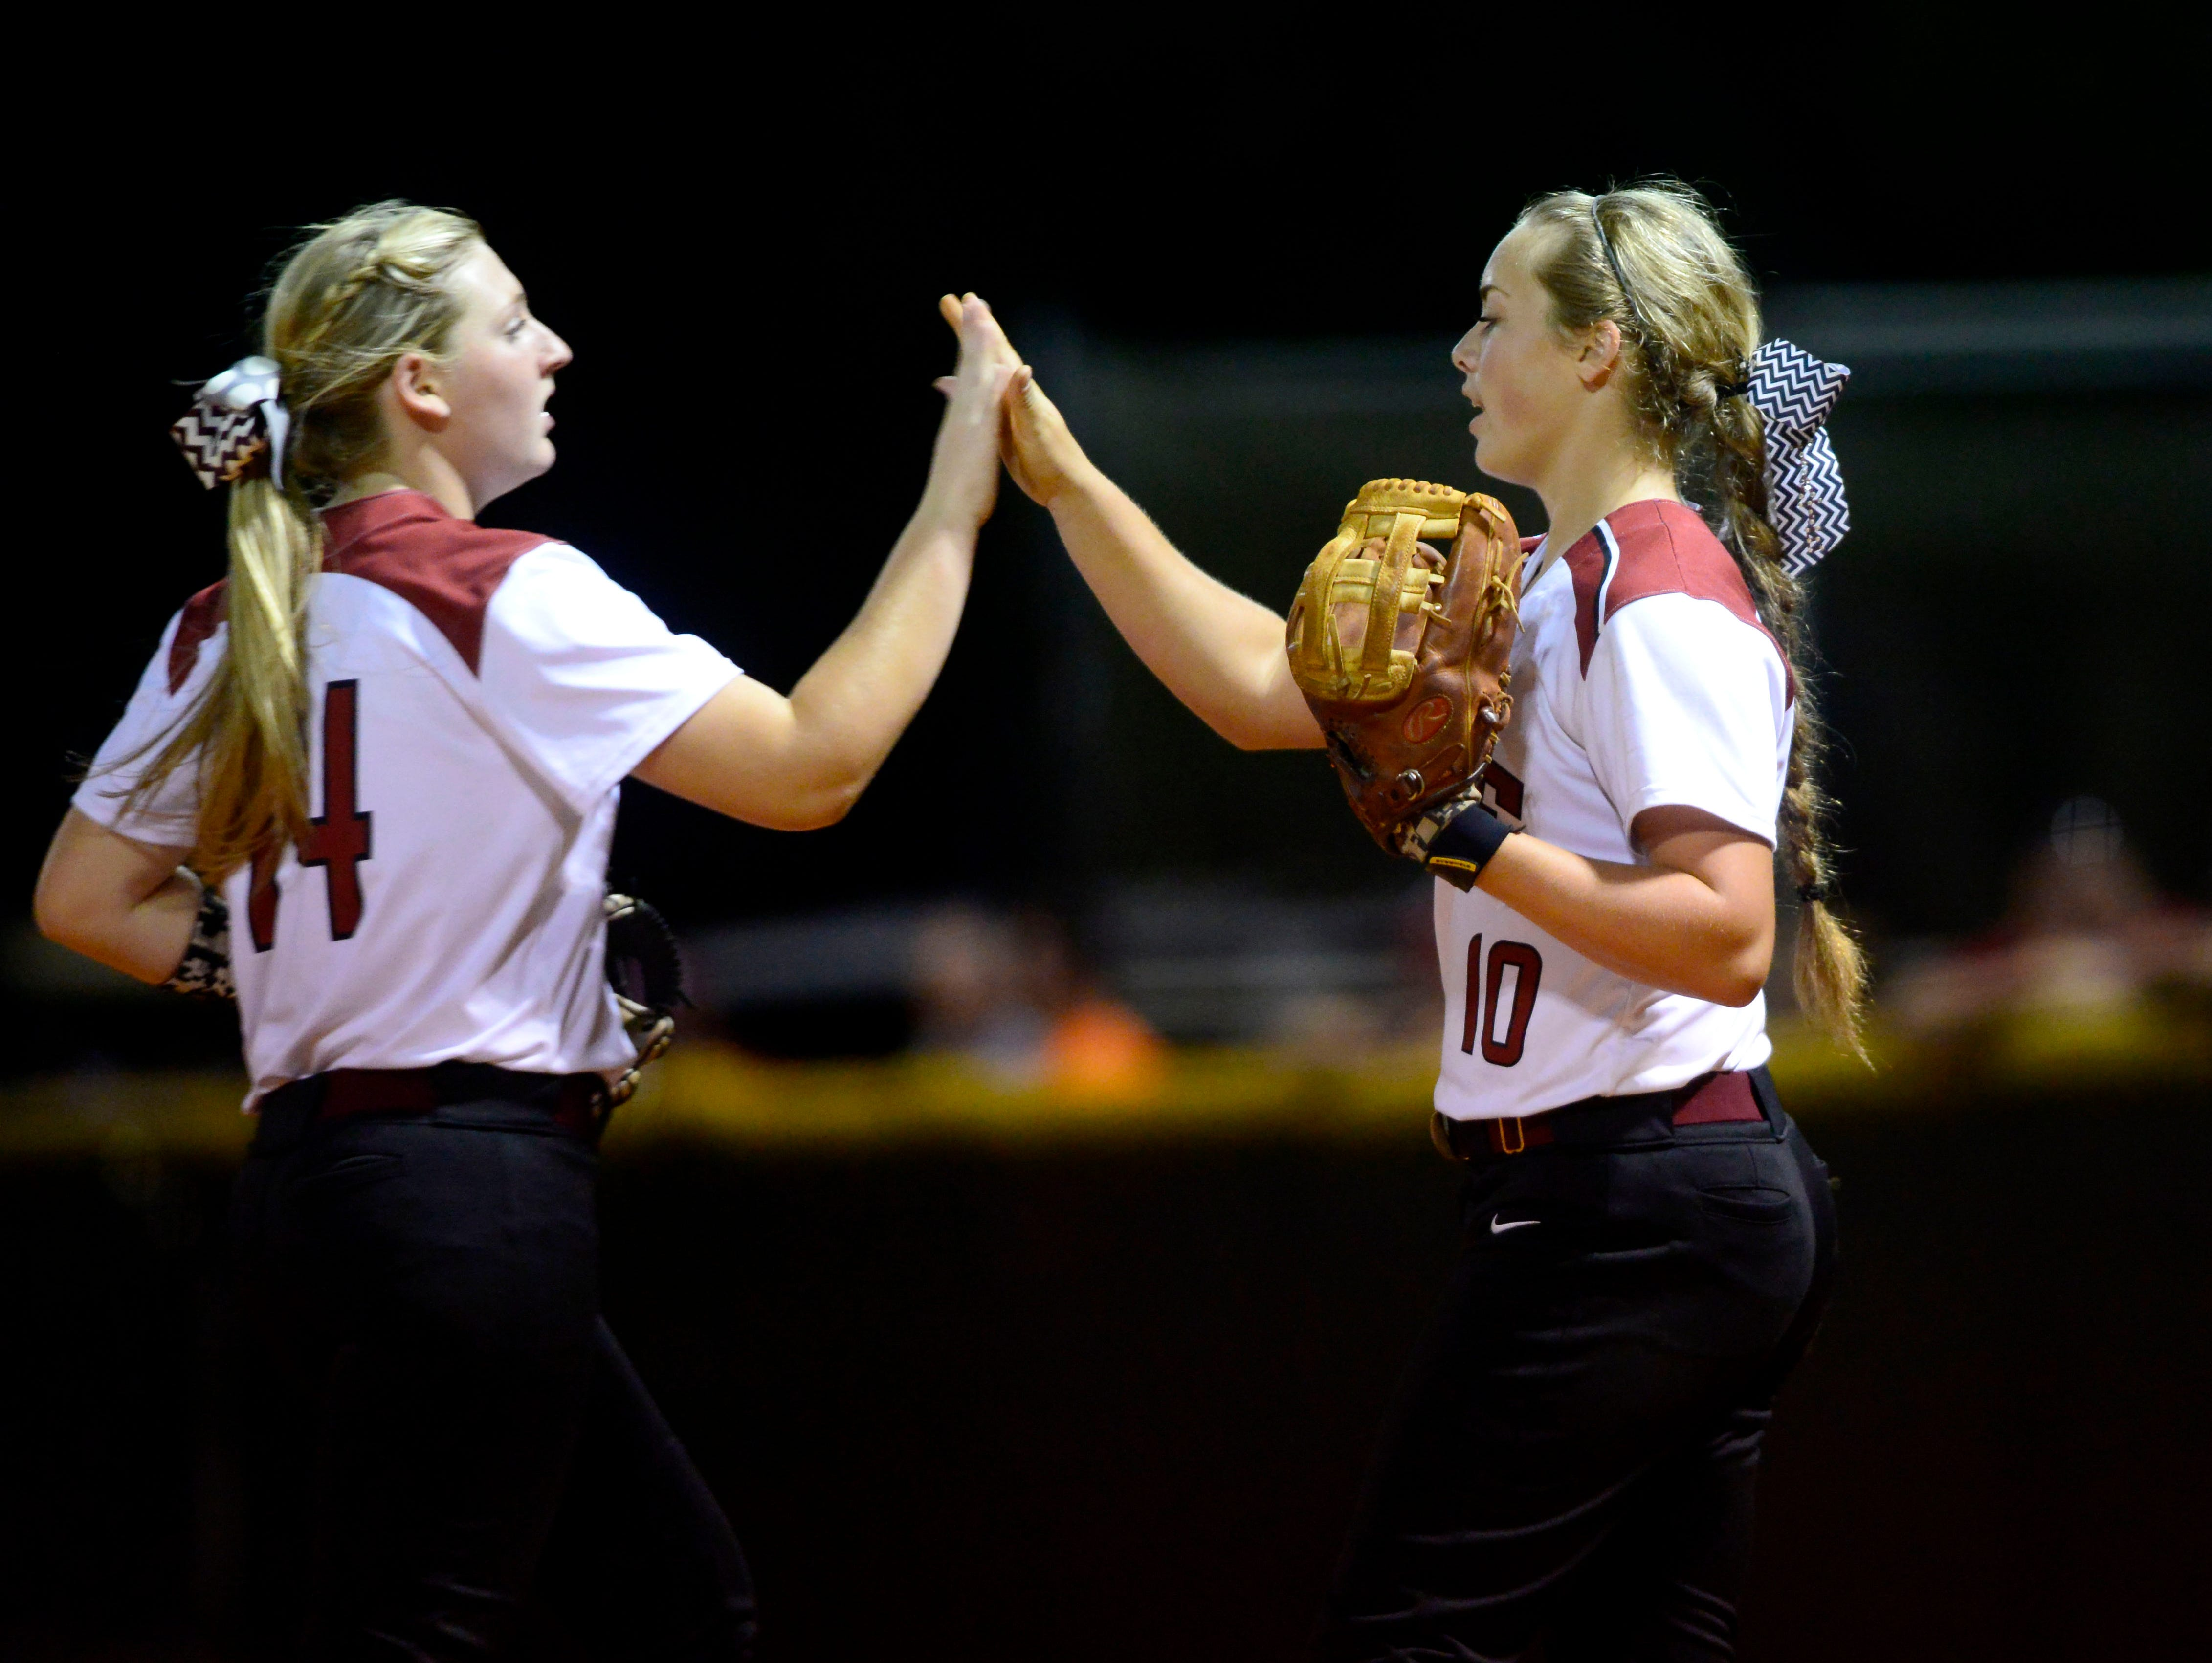 Tate High School pitcher Tori Perkins, right, slaps hands with teammate Samantha Burks after an inning Wednesday in a Region 1-7A quarterfinal game against Lincoln High School.